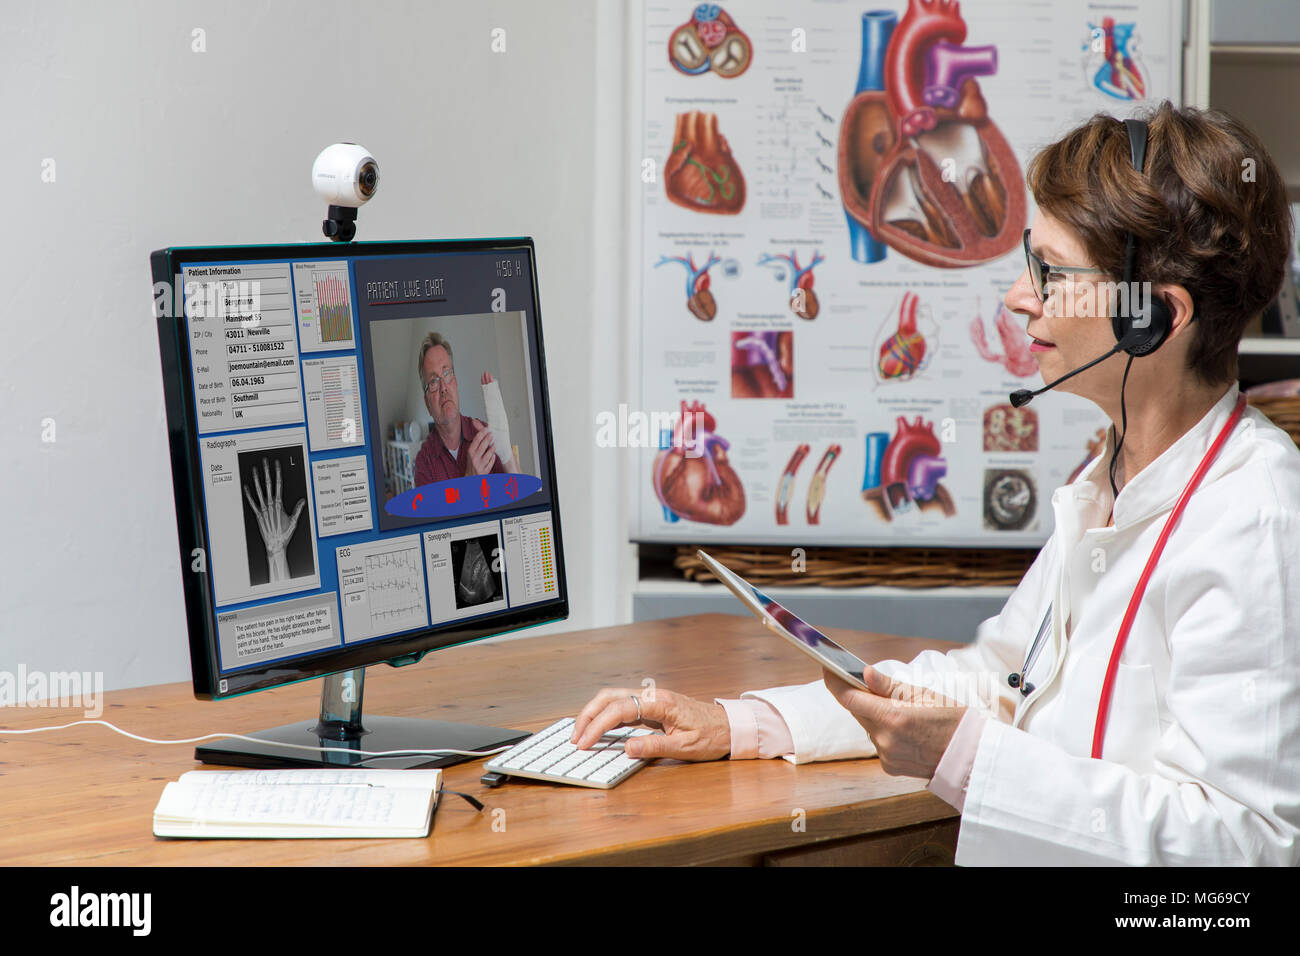 Symbolic photo on telemedicine, a doctor in a doctor's office, communicates with the patient via a webcam, patient data and findings on the monitor, - Stock Image